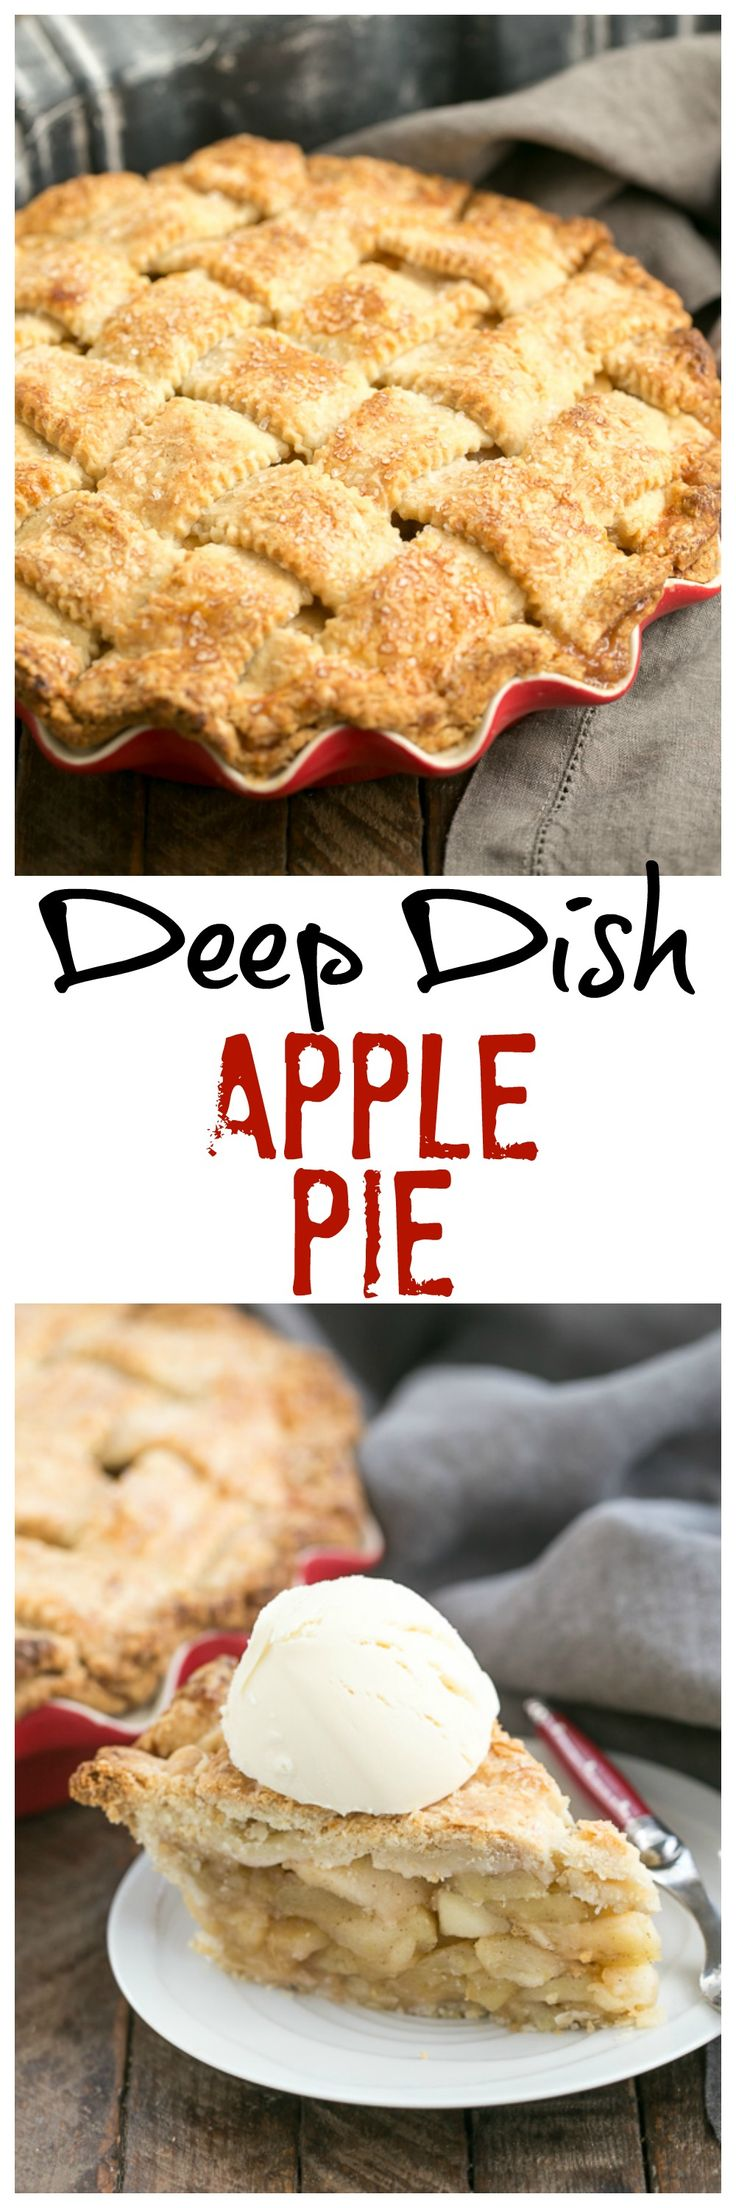 Deep Dish Apple Pie | Packed full of precooked apples makes for a perfect autumnal pie! @lizzydo